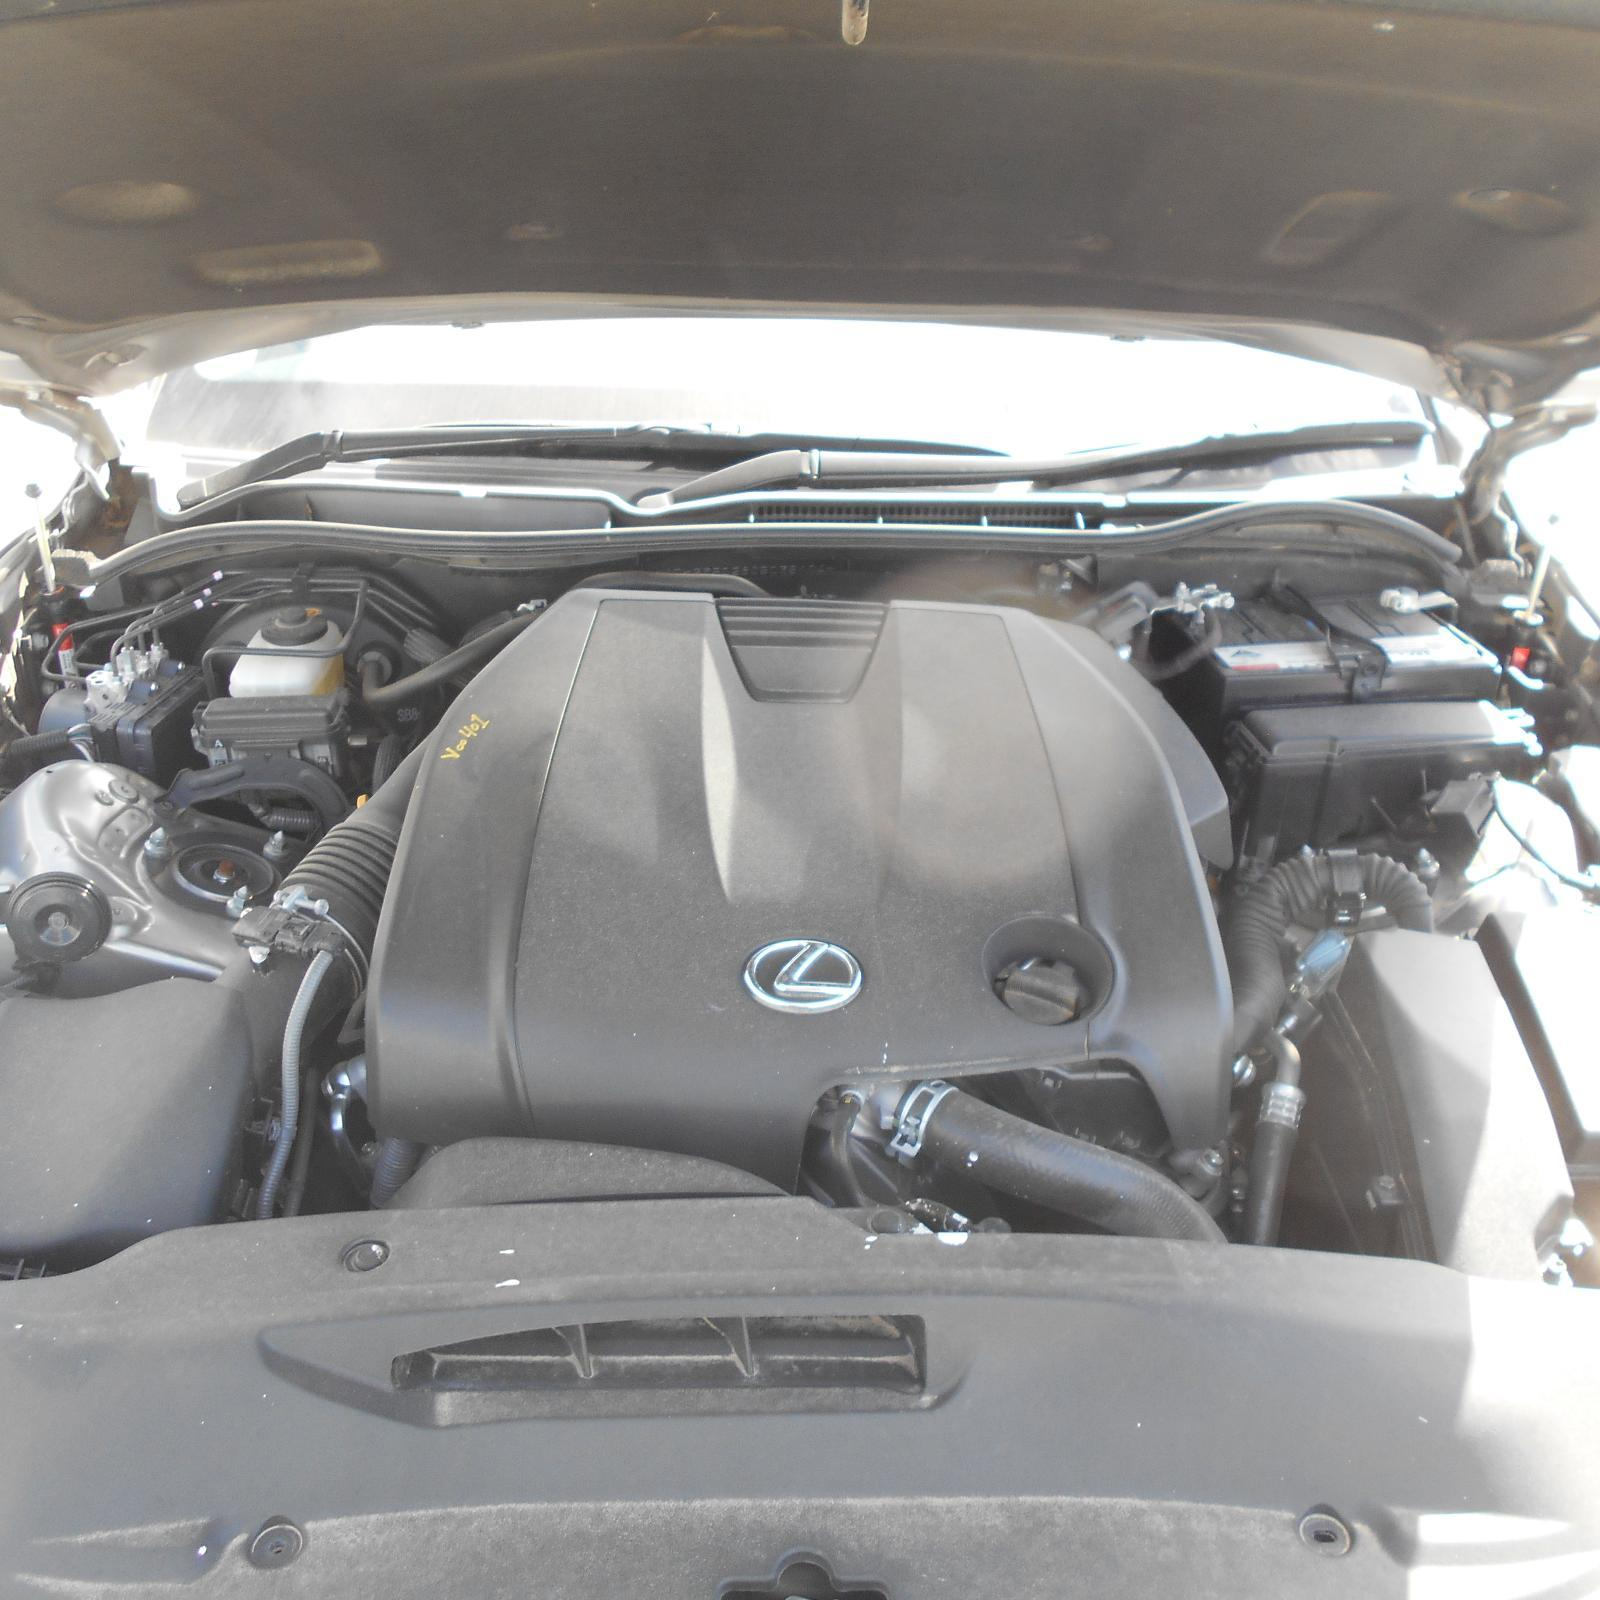 LEXUS IS SERIES, Engine, IS250, PETROL, 2.5, 4GR-FSE, XE30, 04/13-08/15